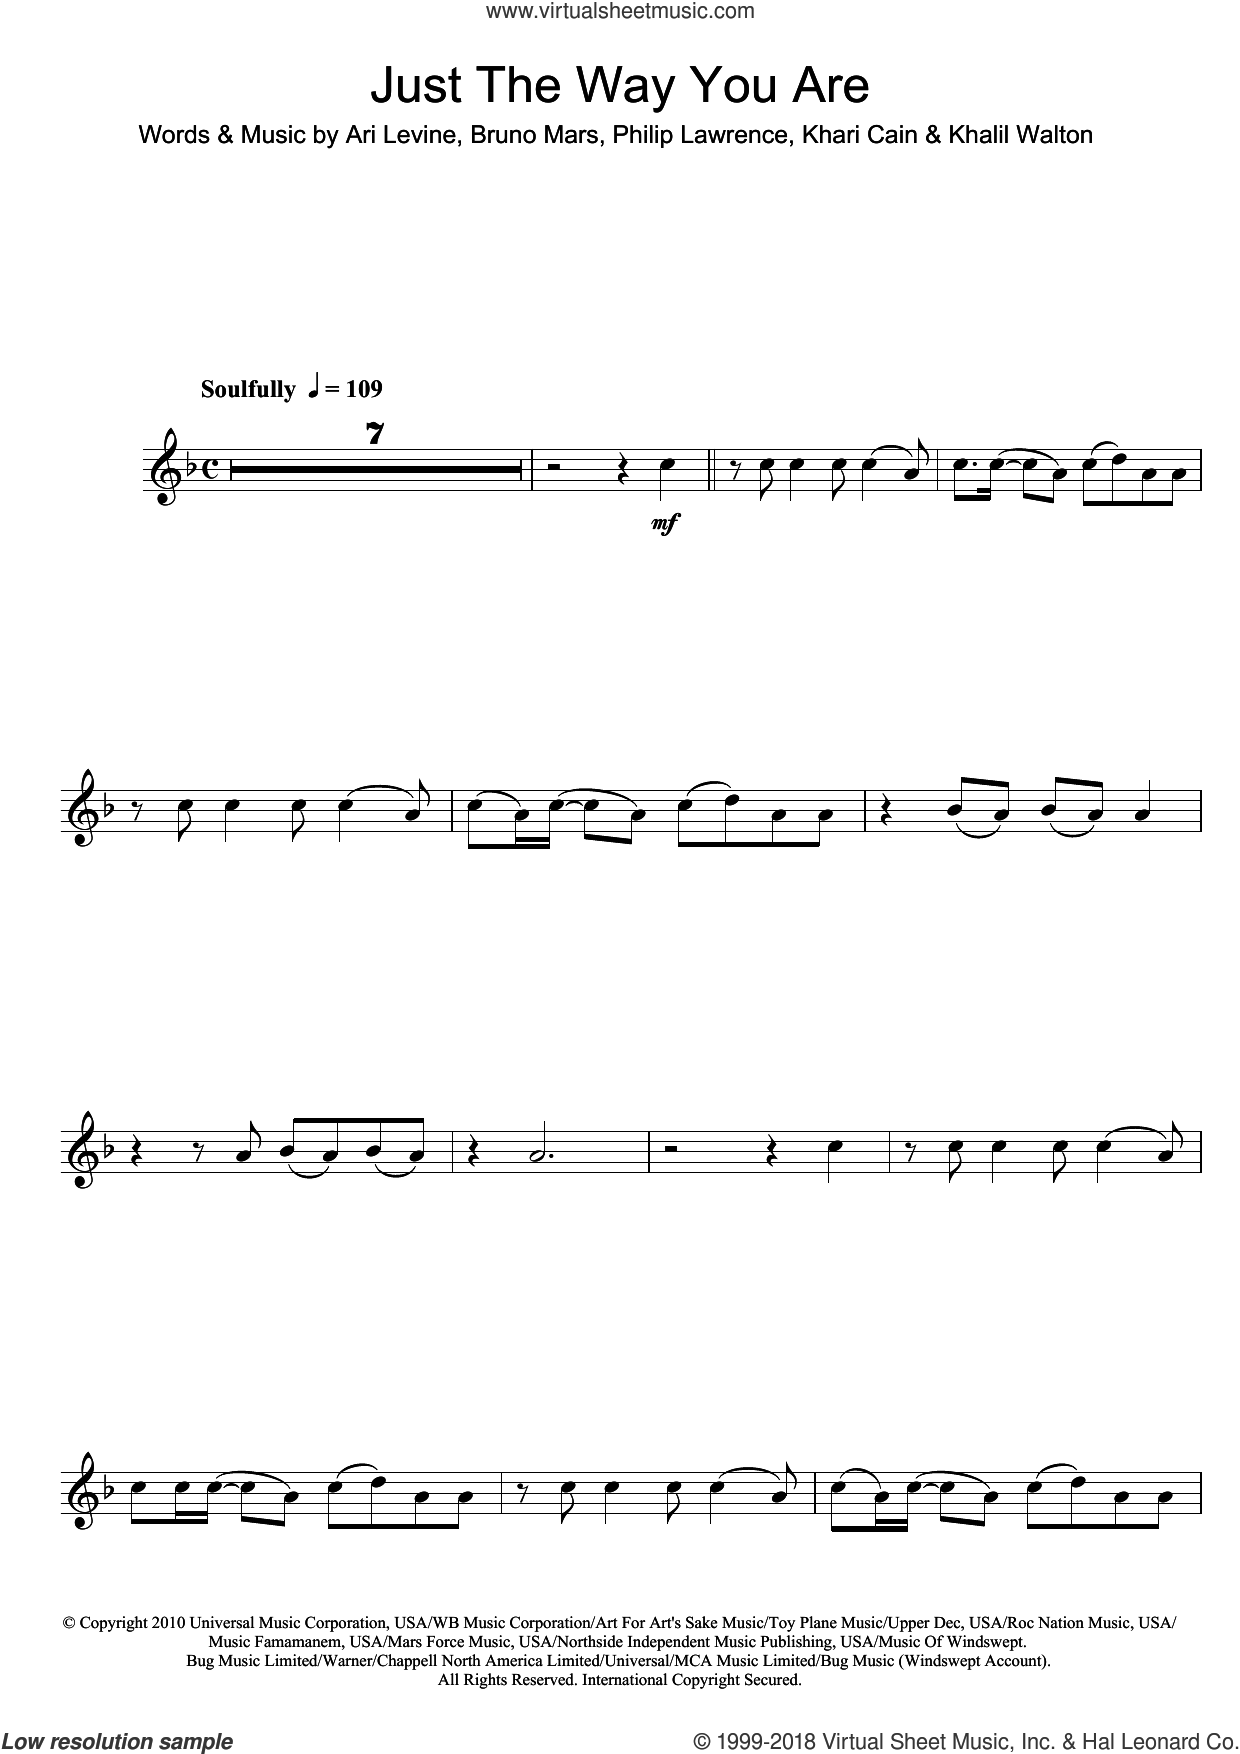 Just The Way You Are sheet music for flute solo by Philip Lawrence